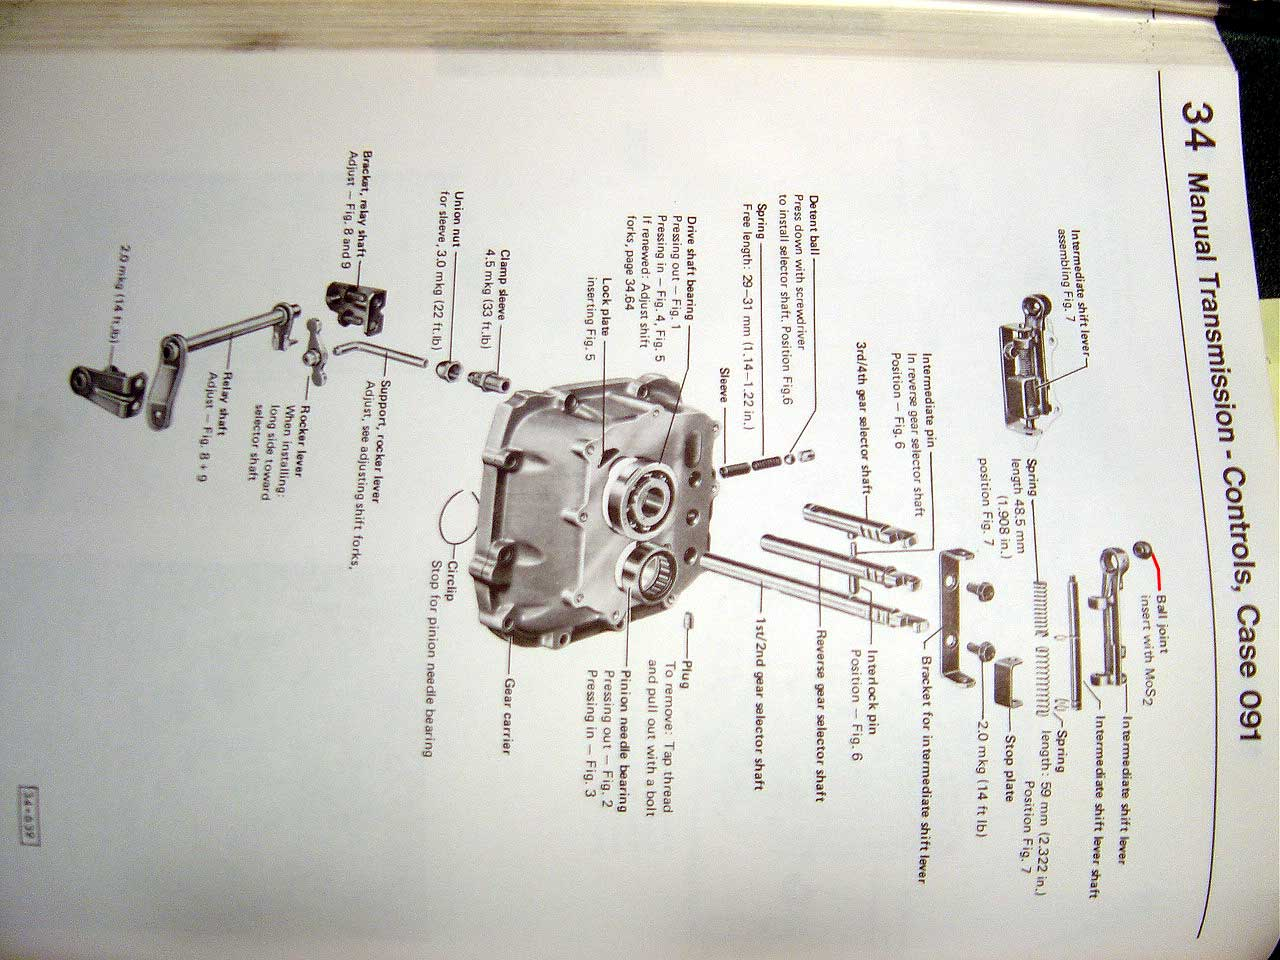 091 transmission refresh rh ratwell com vw 01m transmission diagram vw 002 transmission diagram